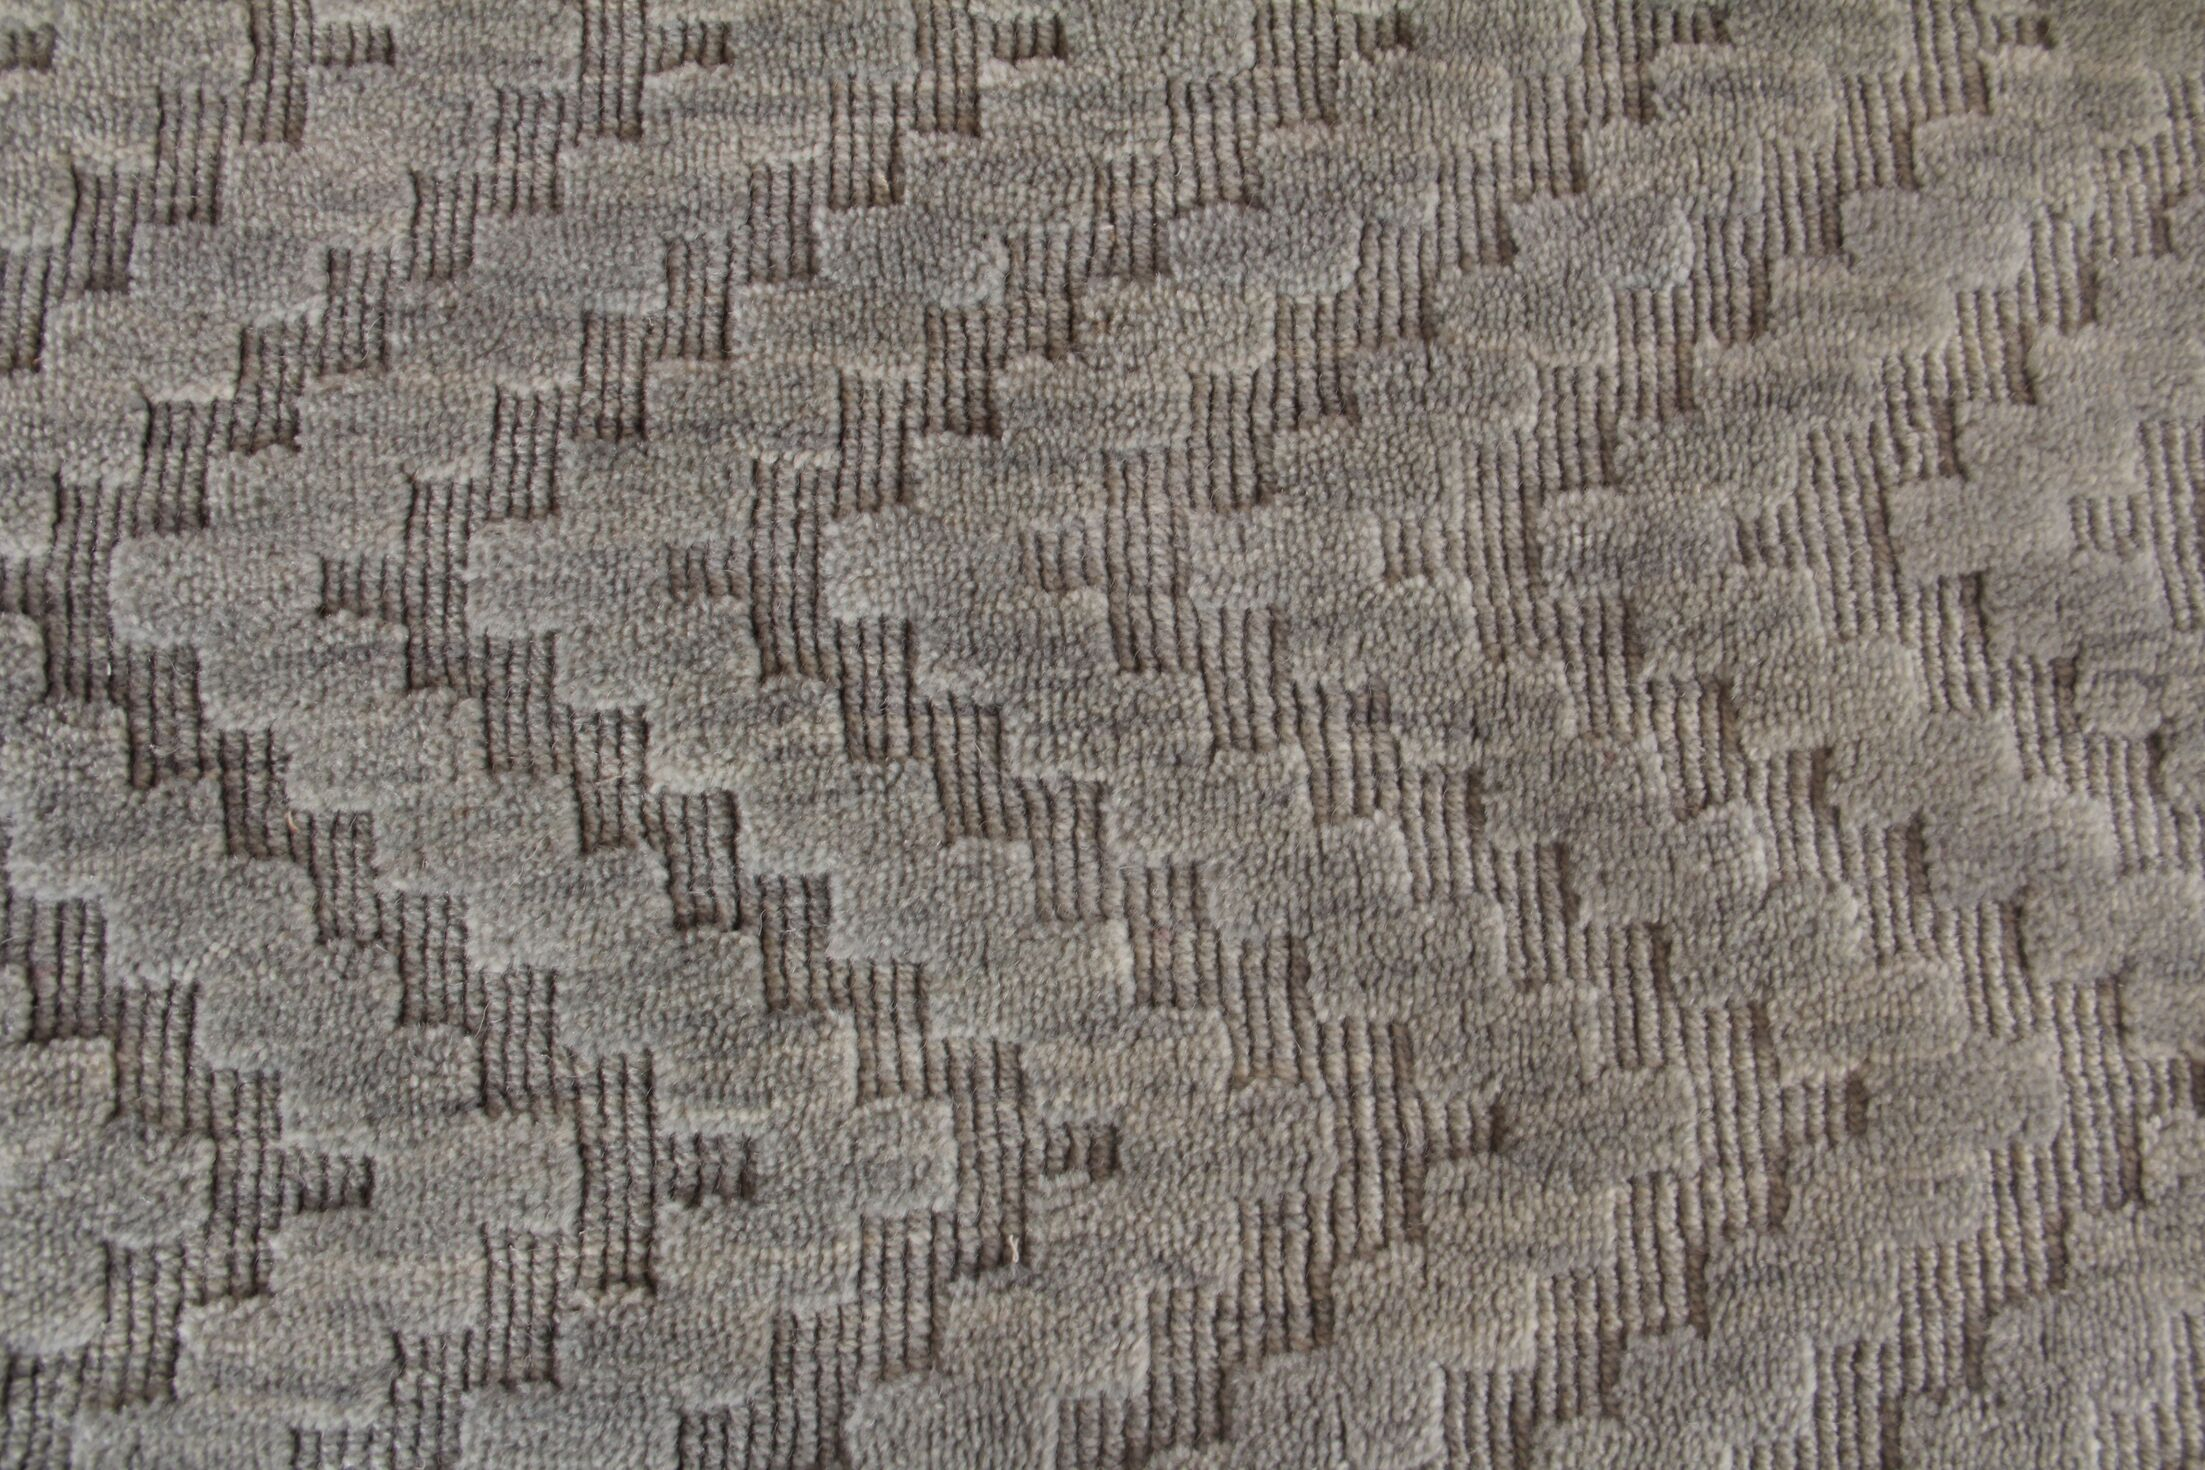 Demani Hand Woven Wool Gray Area Rug Rug Size: Rectangle 9' x 12'